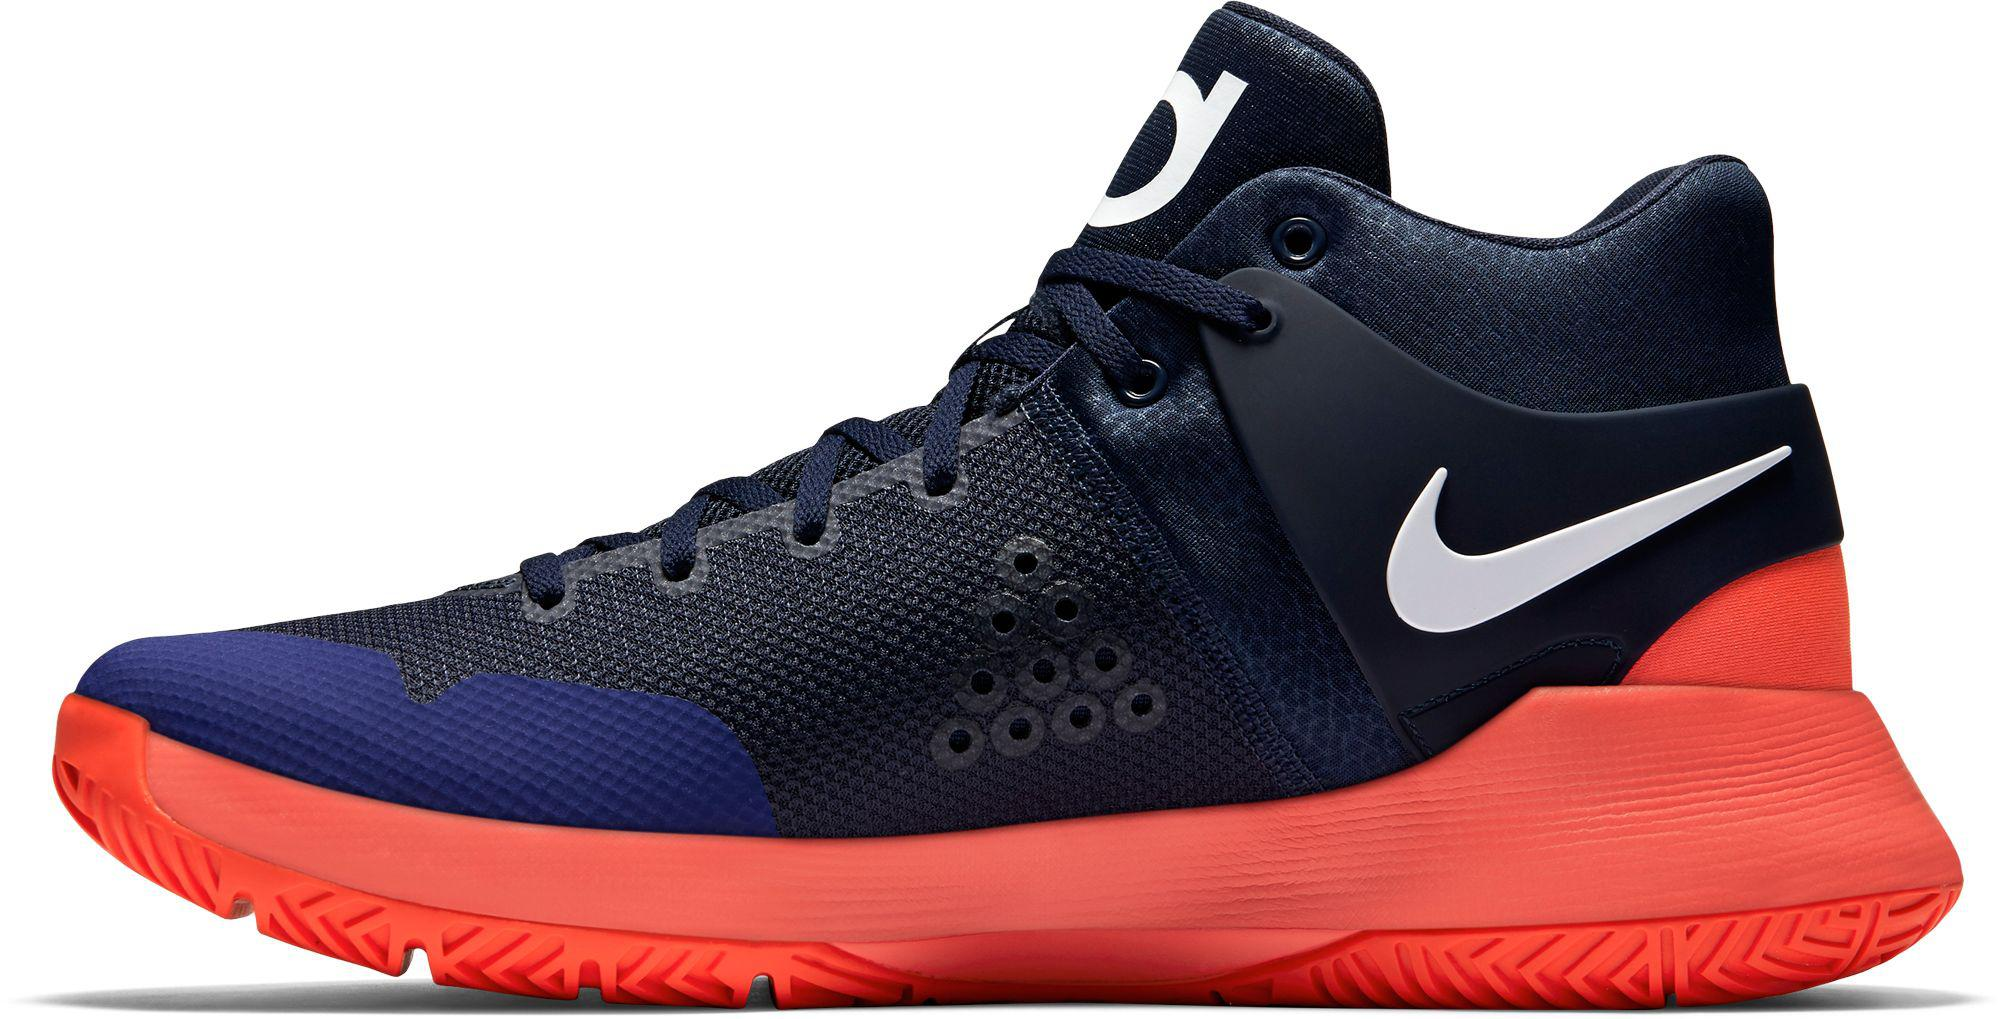 info for 2cc9b aacb2 ... closeout lyst nike kd trey 5 iv basketball shoes in blue for men cd19f  91dca